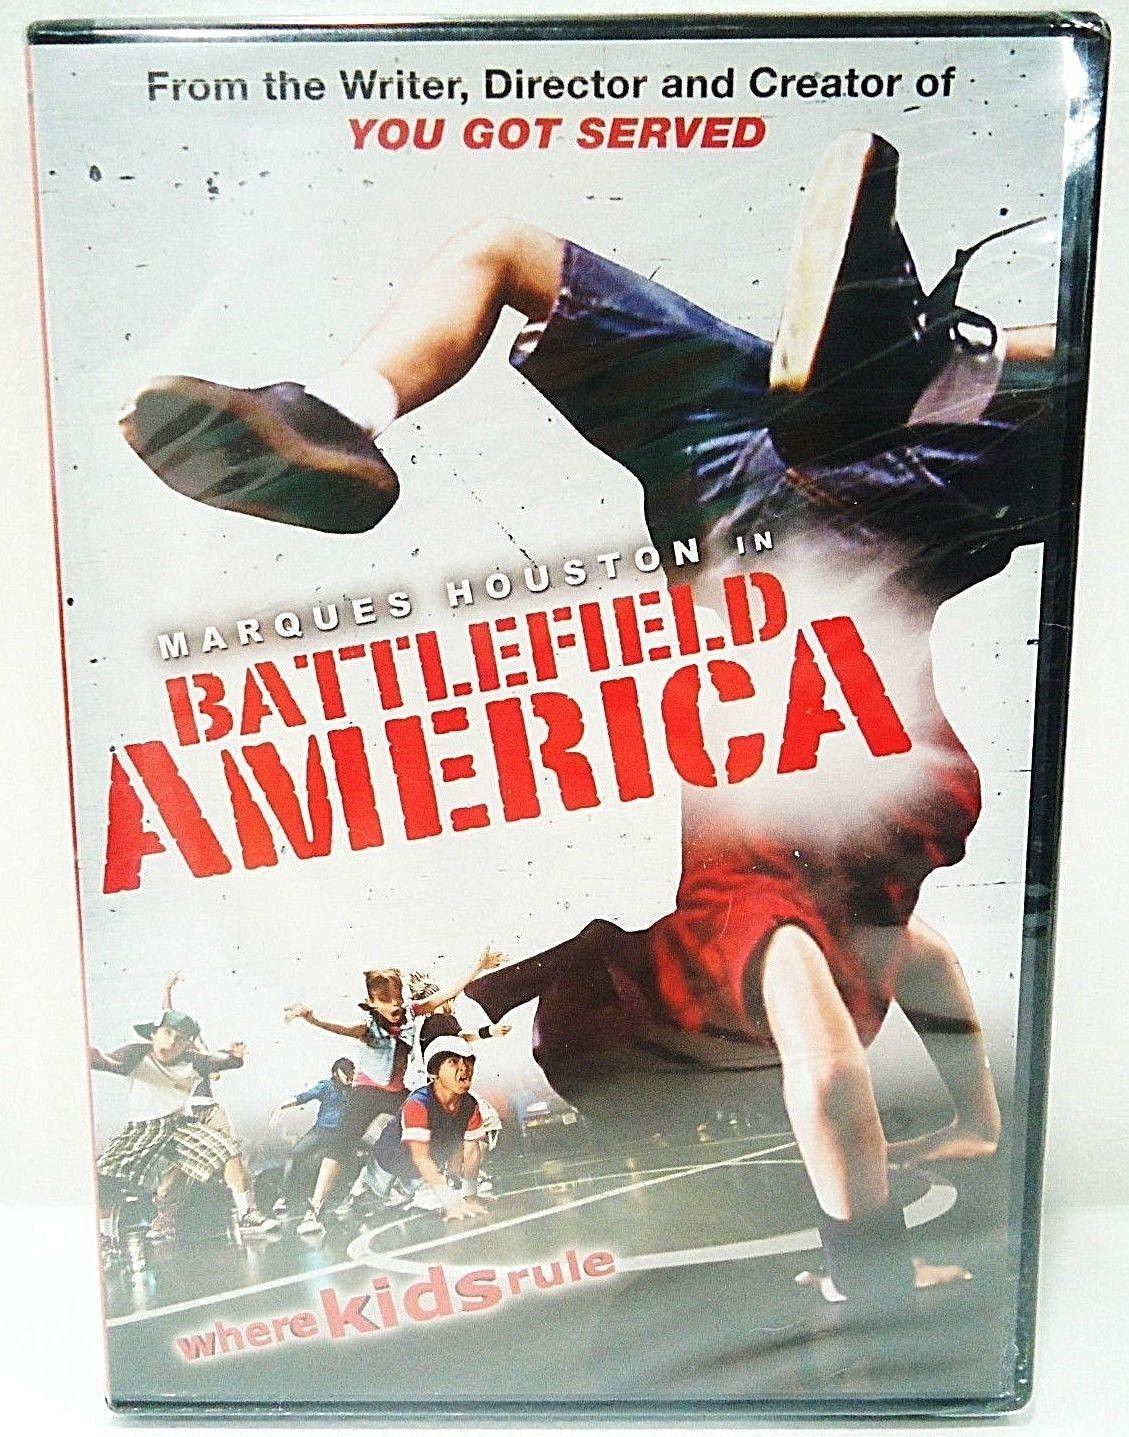 BATTLEFIELD AMERICA - DVD - MARQUES HOUSTON - HIP HOP - YOU GOT SERVED - NEW